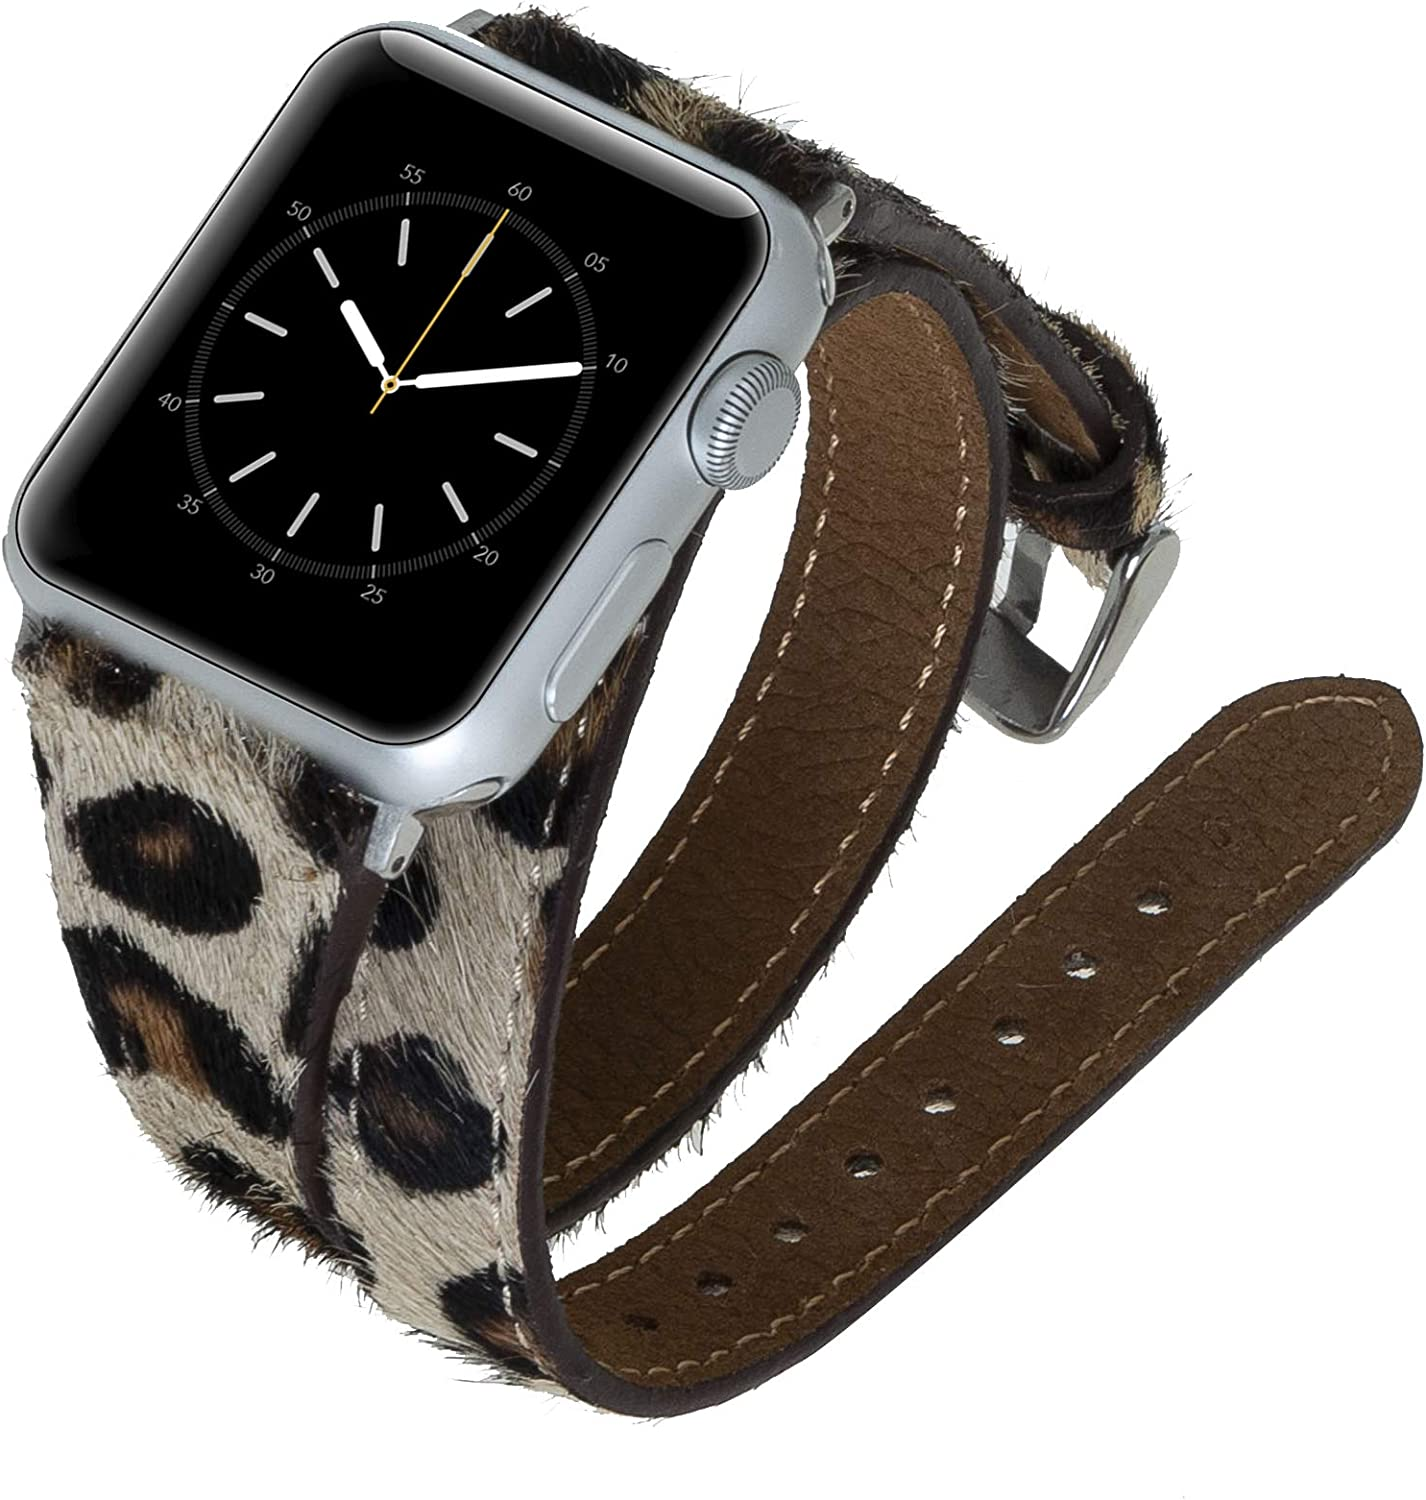 Venito Serena Slim Double Wrap Leather Watch Band Compatible with The Newest Apple Watch iwatch Series 6 as Well as Series 1,2,3,4,5 (Furry Leopard w/Silver Stainless Steel Hardware, 38mm-40mm)